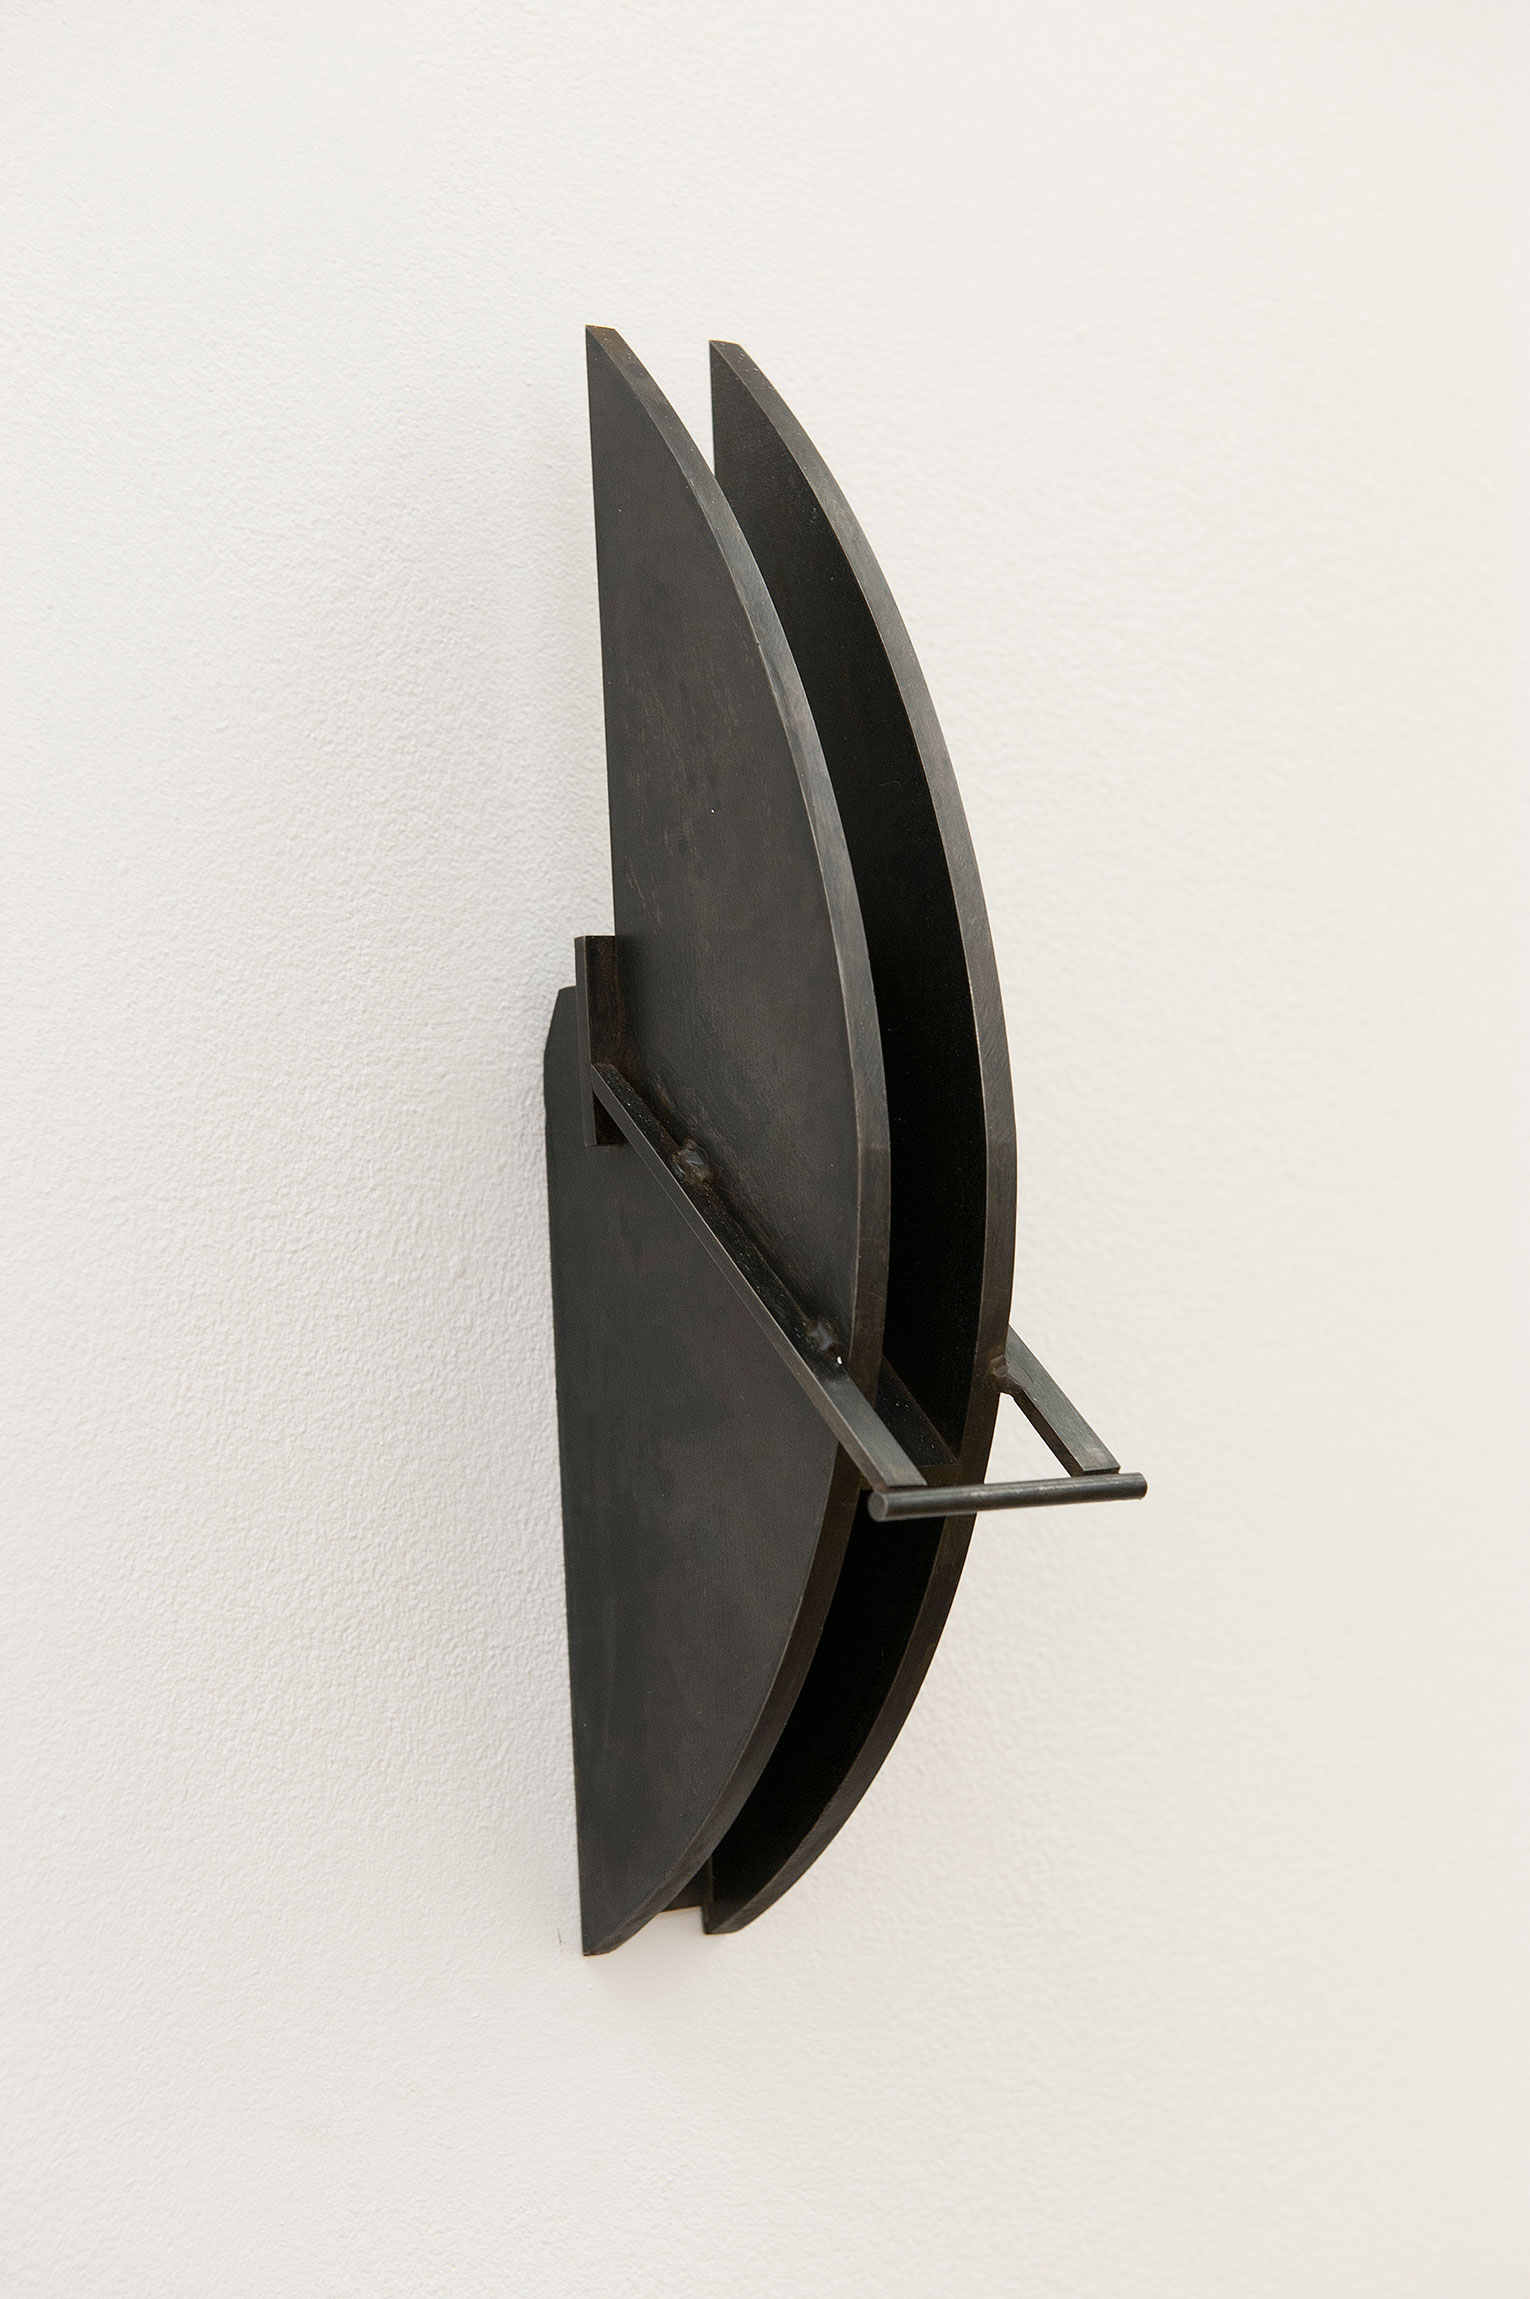 <b>Title:&nbsp;</b>Black Solid / White Noise<br /><b>Year:&nbsp;</b>2010<br /><b>Medium:&nbsp;</b>Mild steel<br /><b>Size:&nbsp;</b>26 x 10 x 5 cm